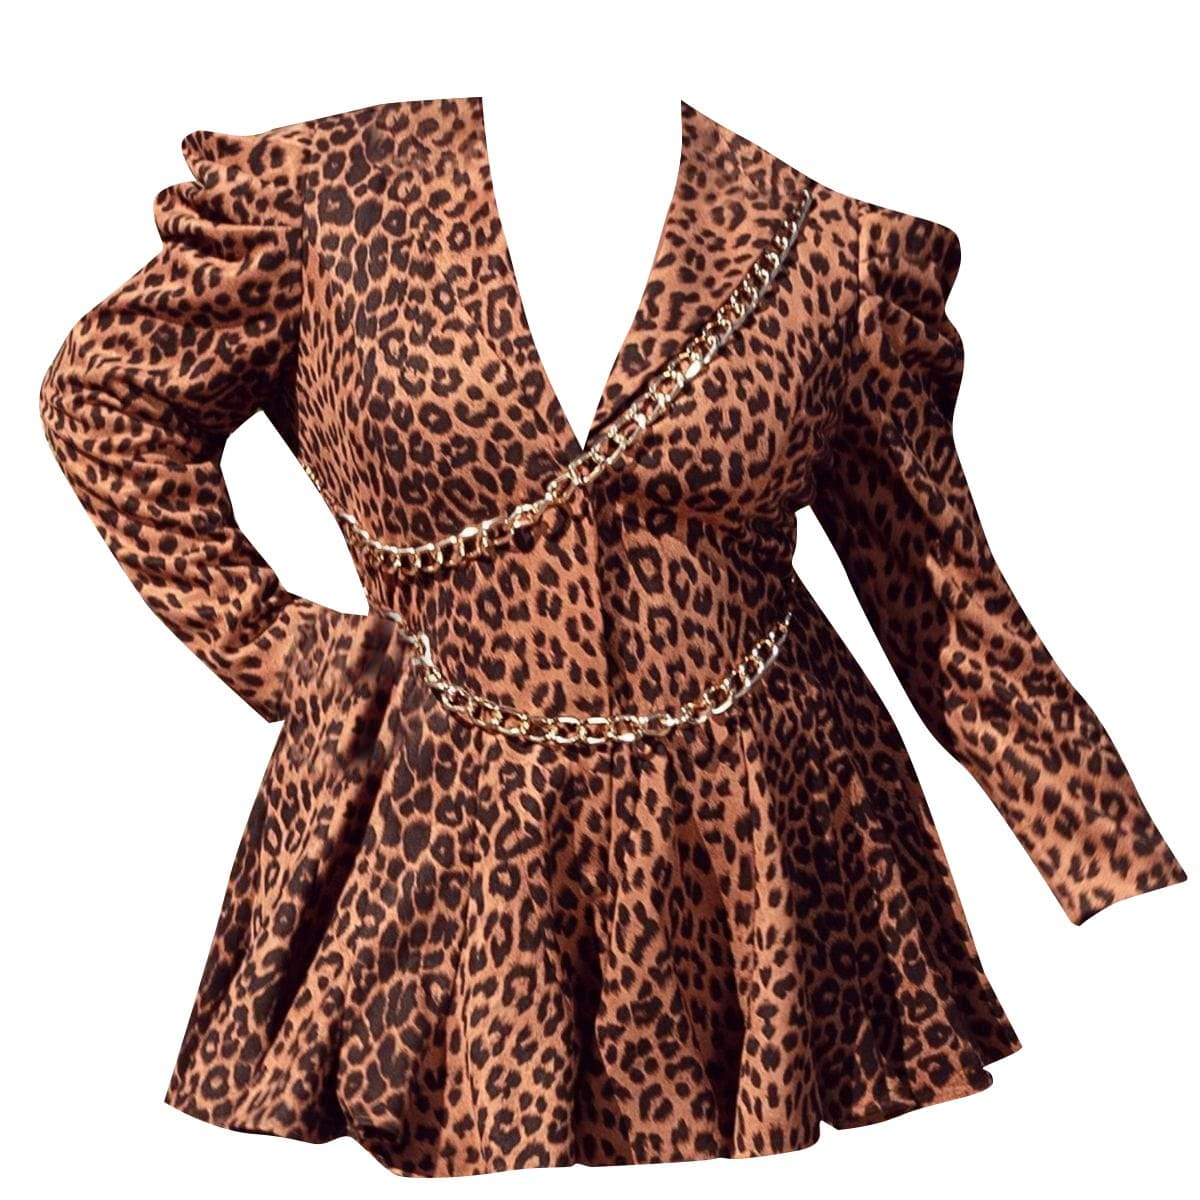 Posh Shoppe: Leopard Mini Dress Dress